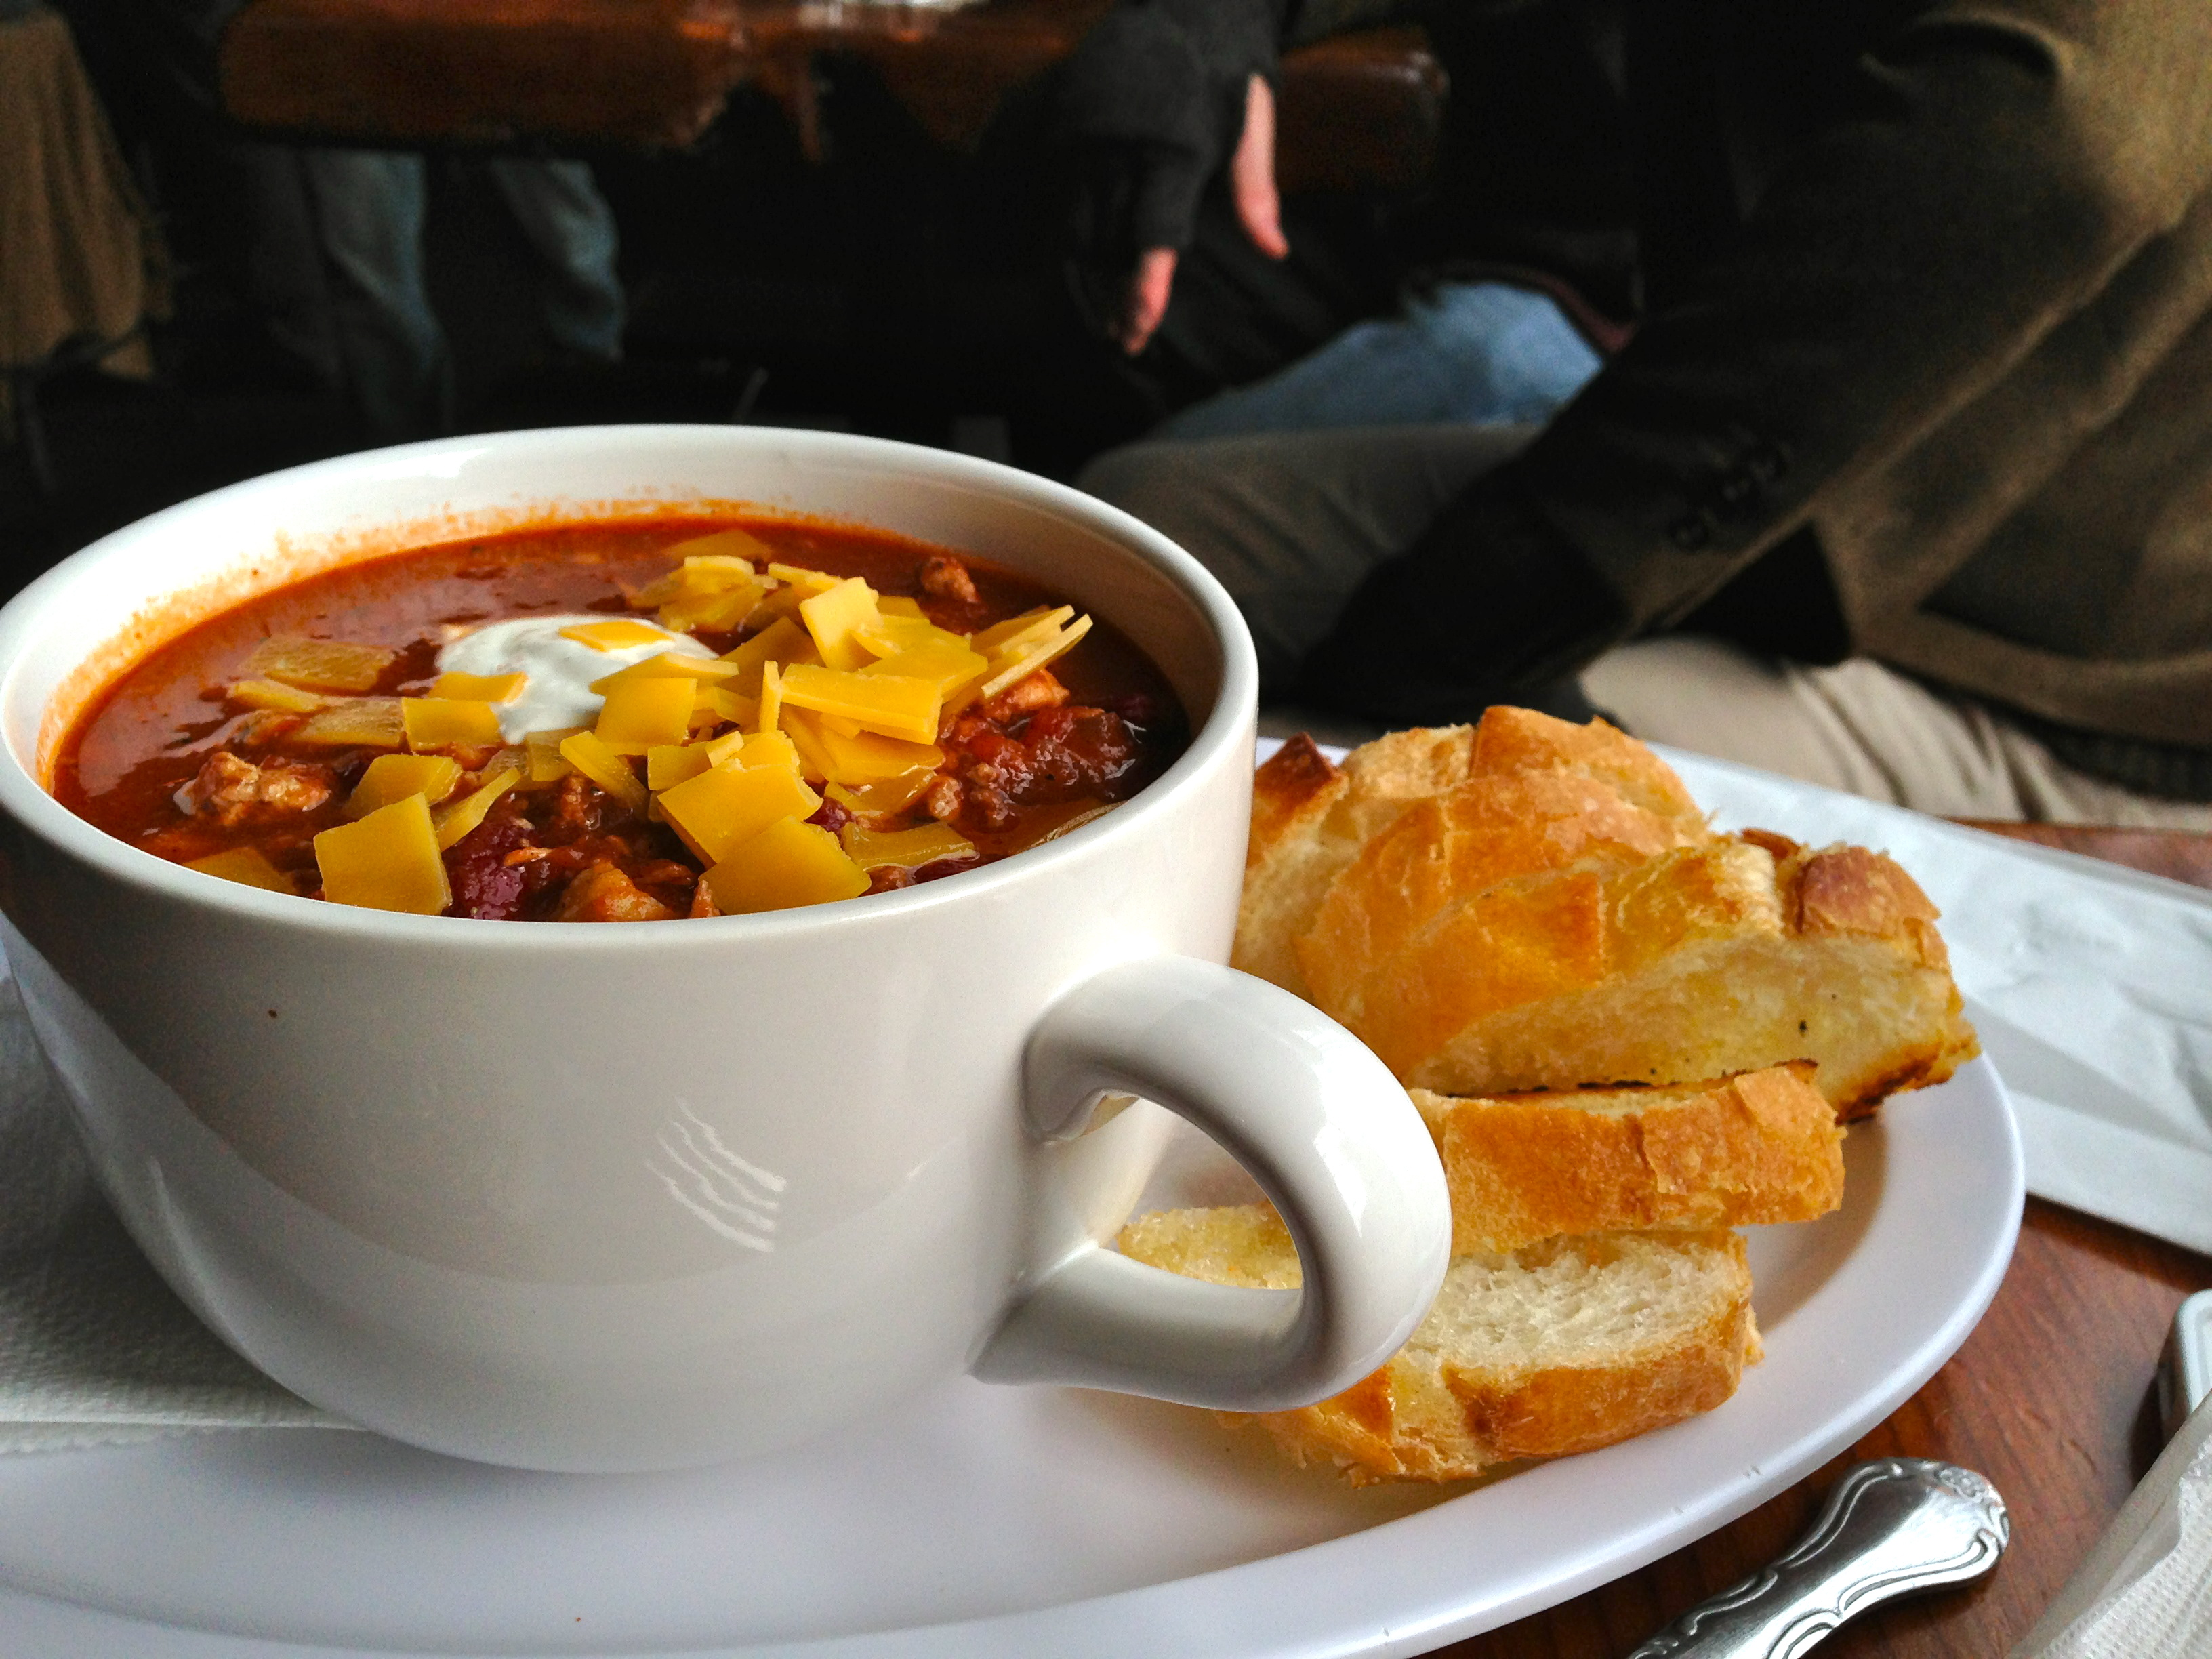 Sweet and spicy chili in a massive mug